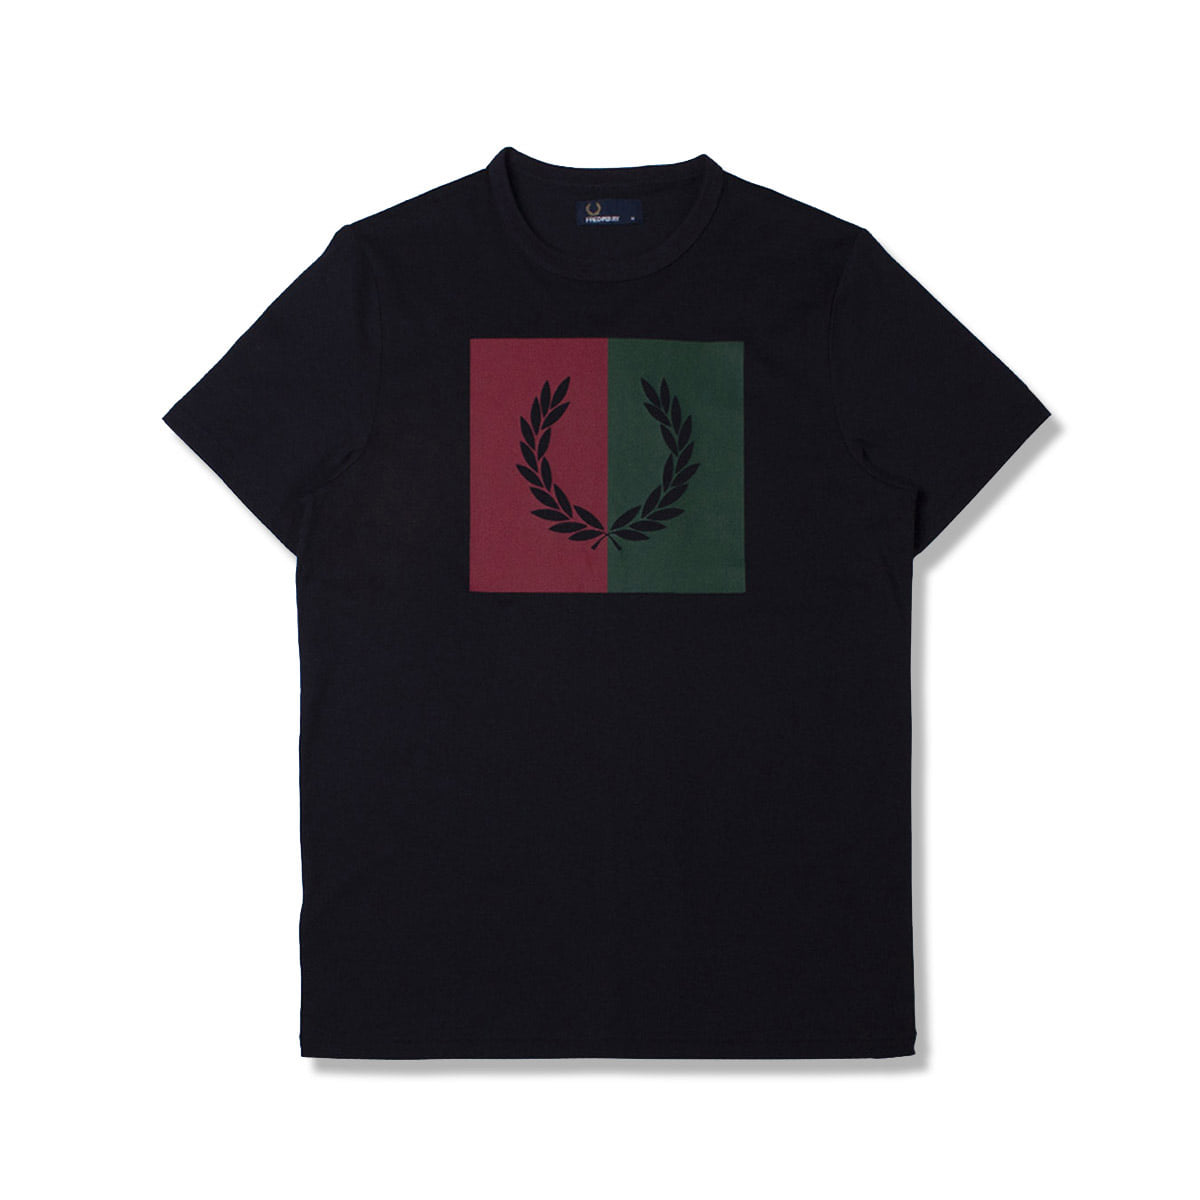 [FRED PERRY] SPLIT LAUREL WREATH T-SHIRT 'NAVY'